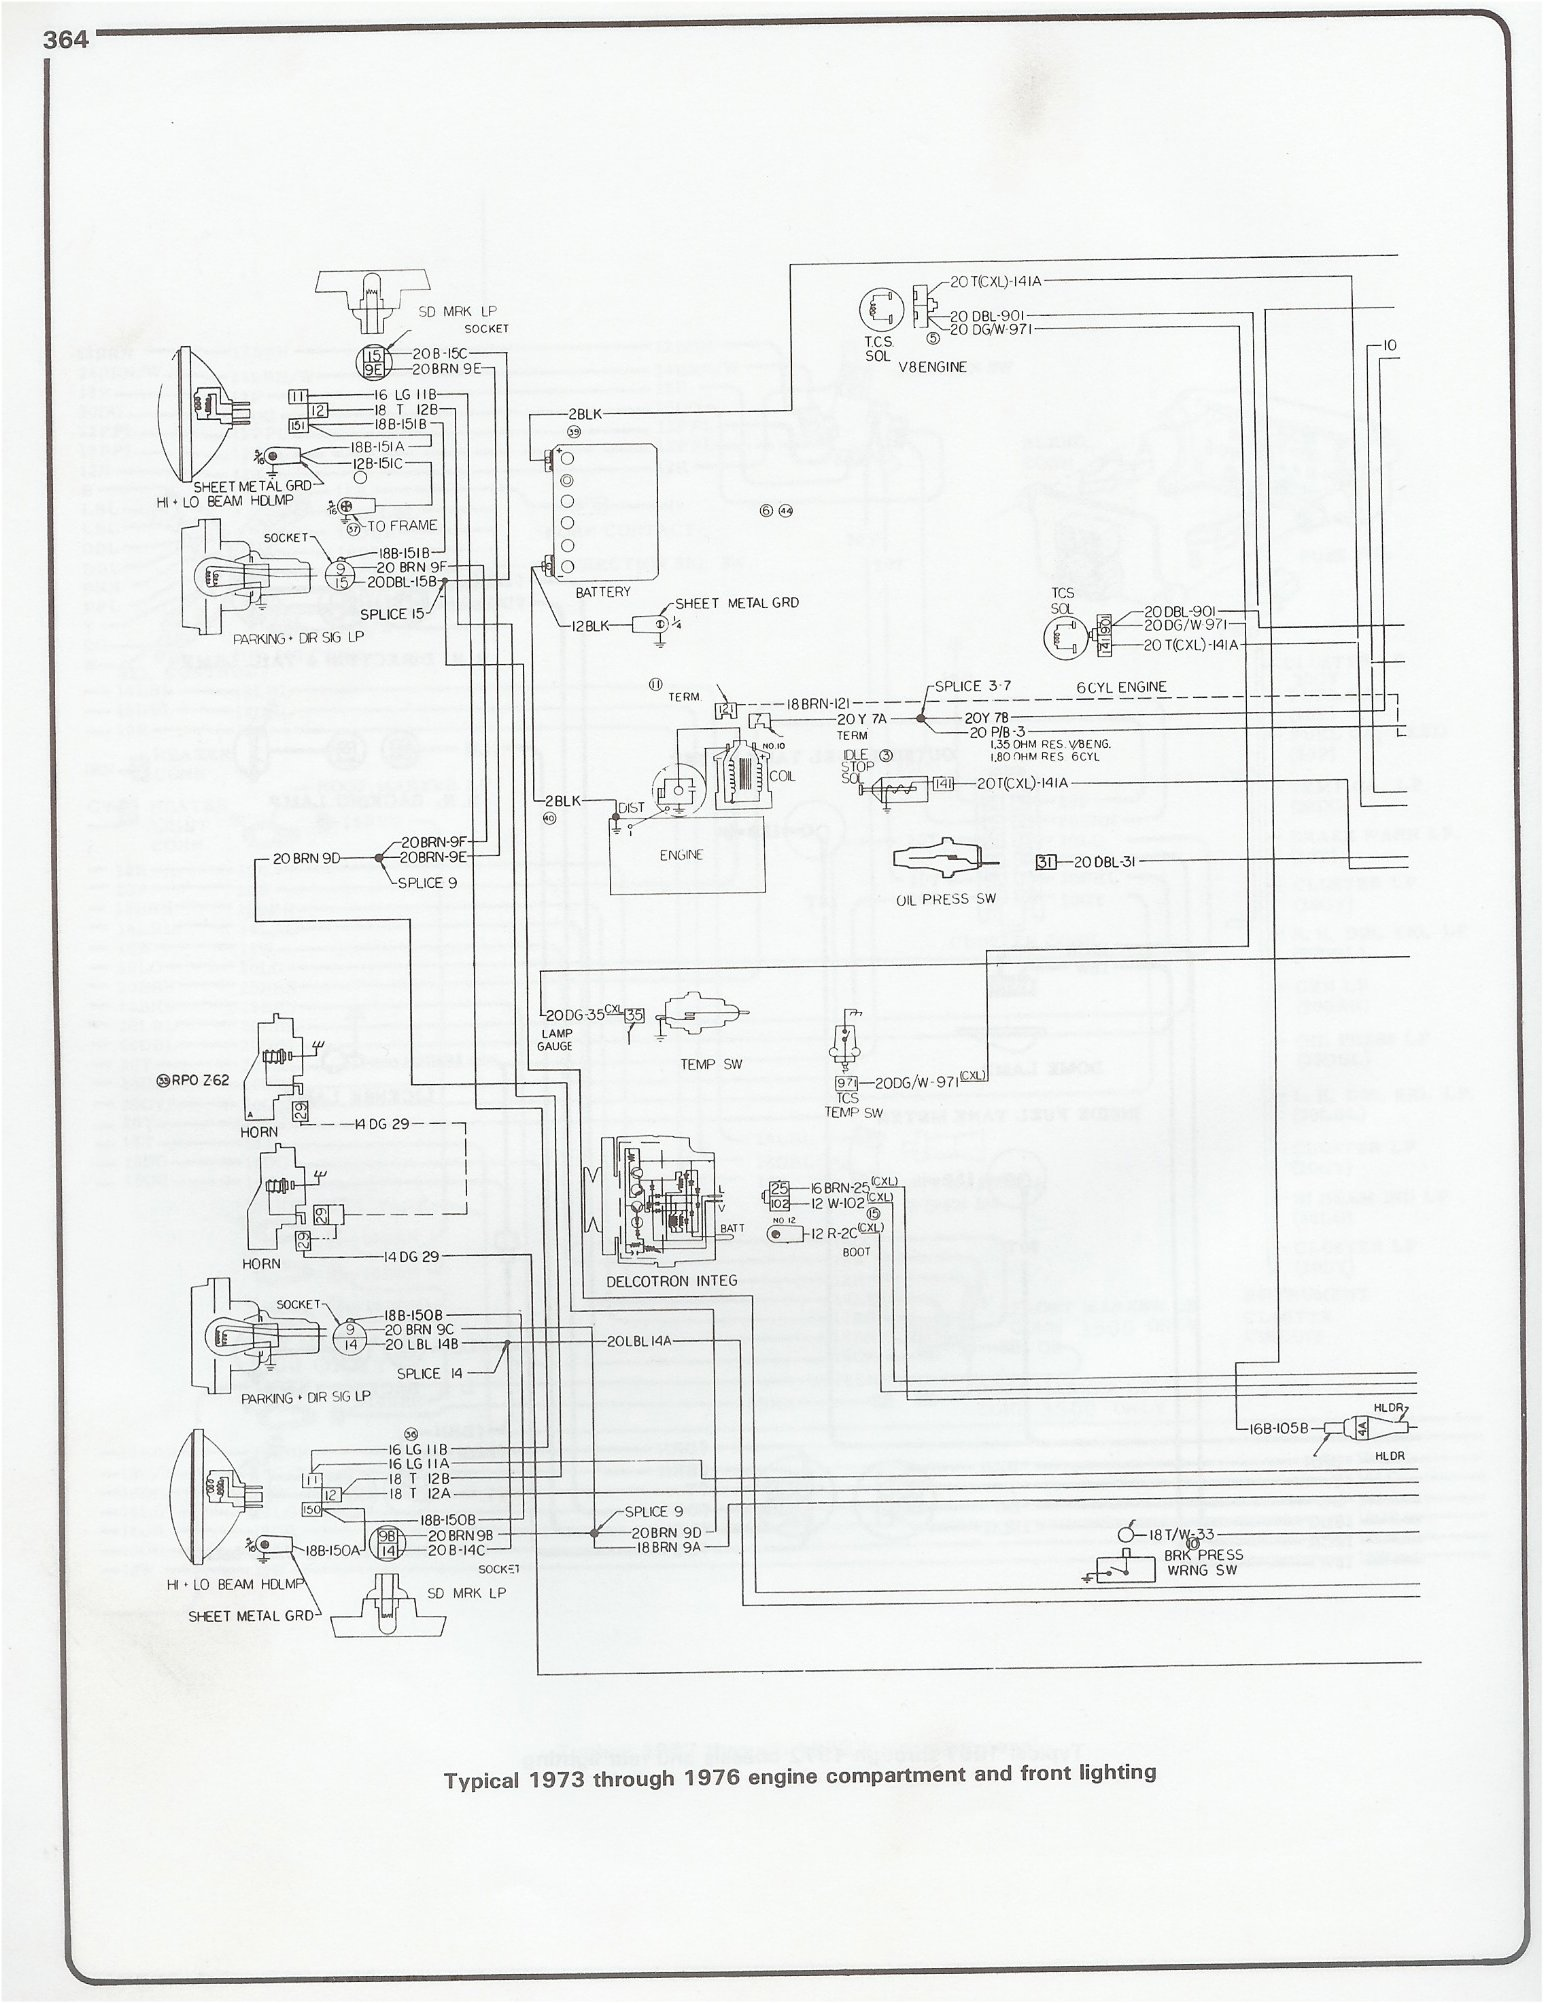 Complete 73 87 Wiring Diagrams 2001 GMC Fuse Box Diagram 1978 Gmc C25 Fuse  Box